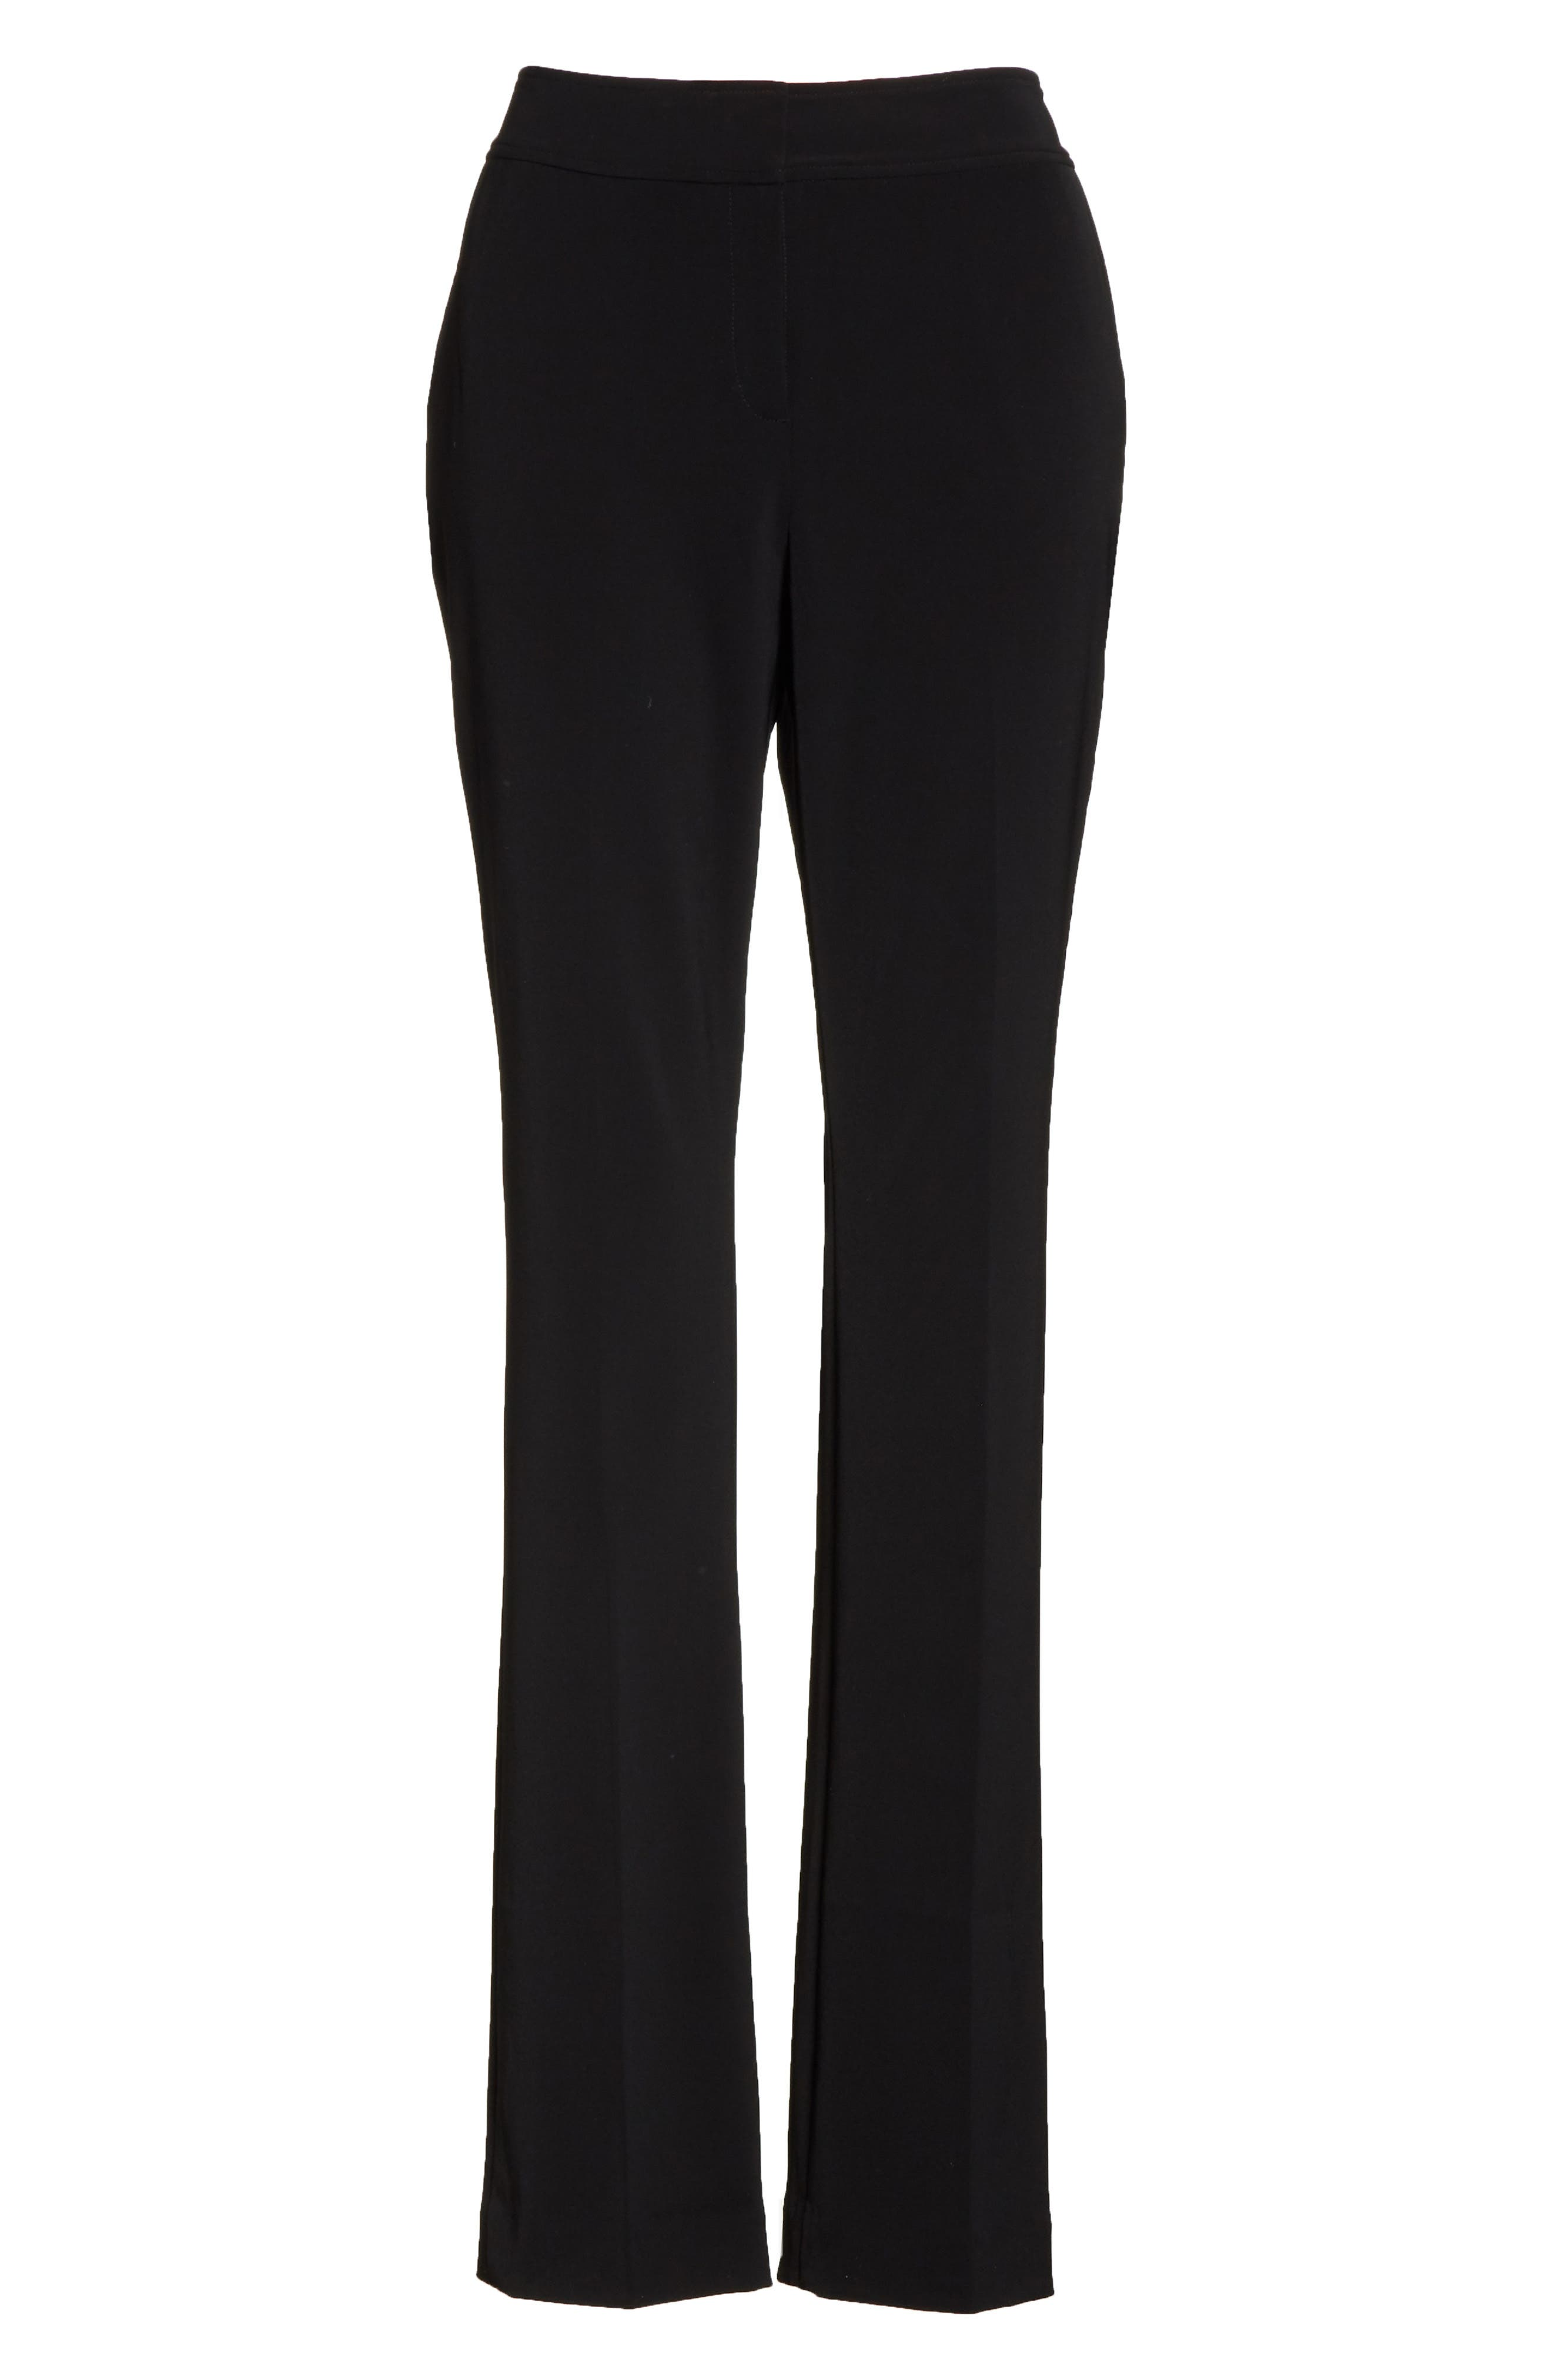 Yulit High Waist Trousers,                             Alternate thumbnail 6, color,                             Black